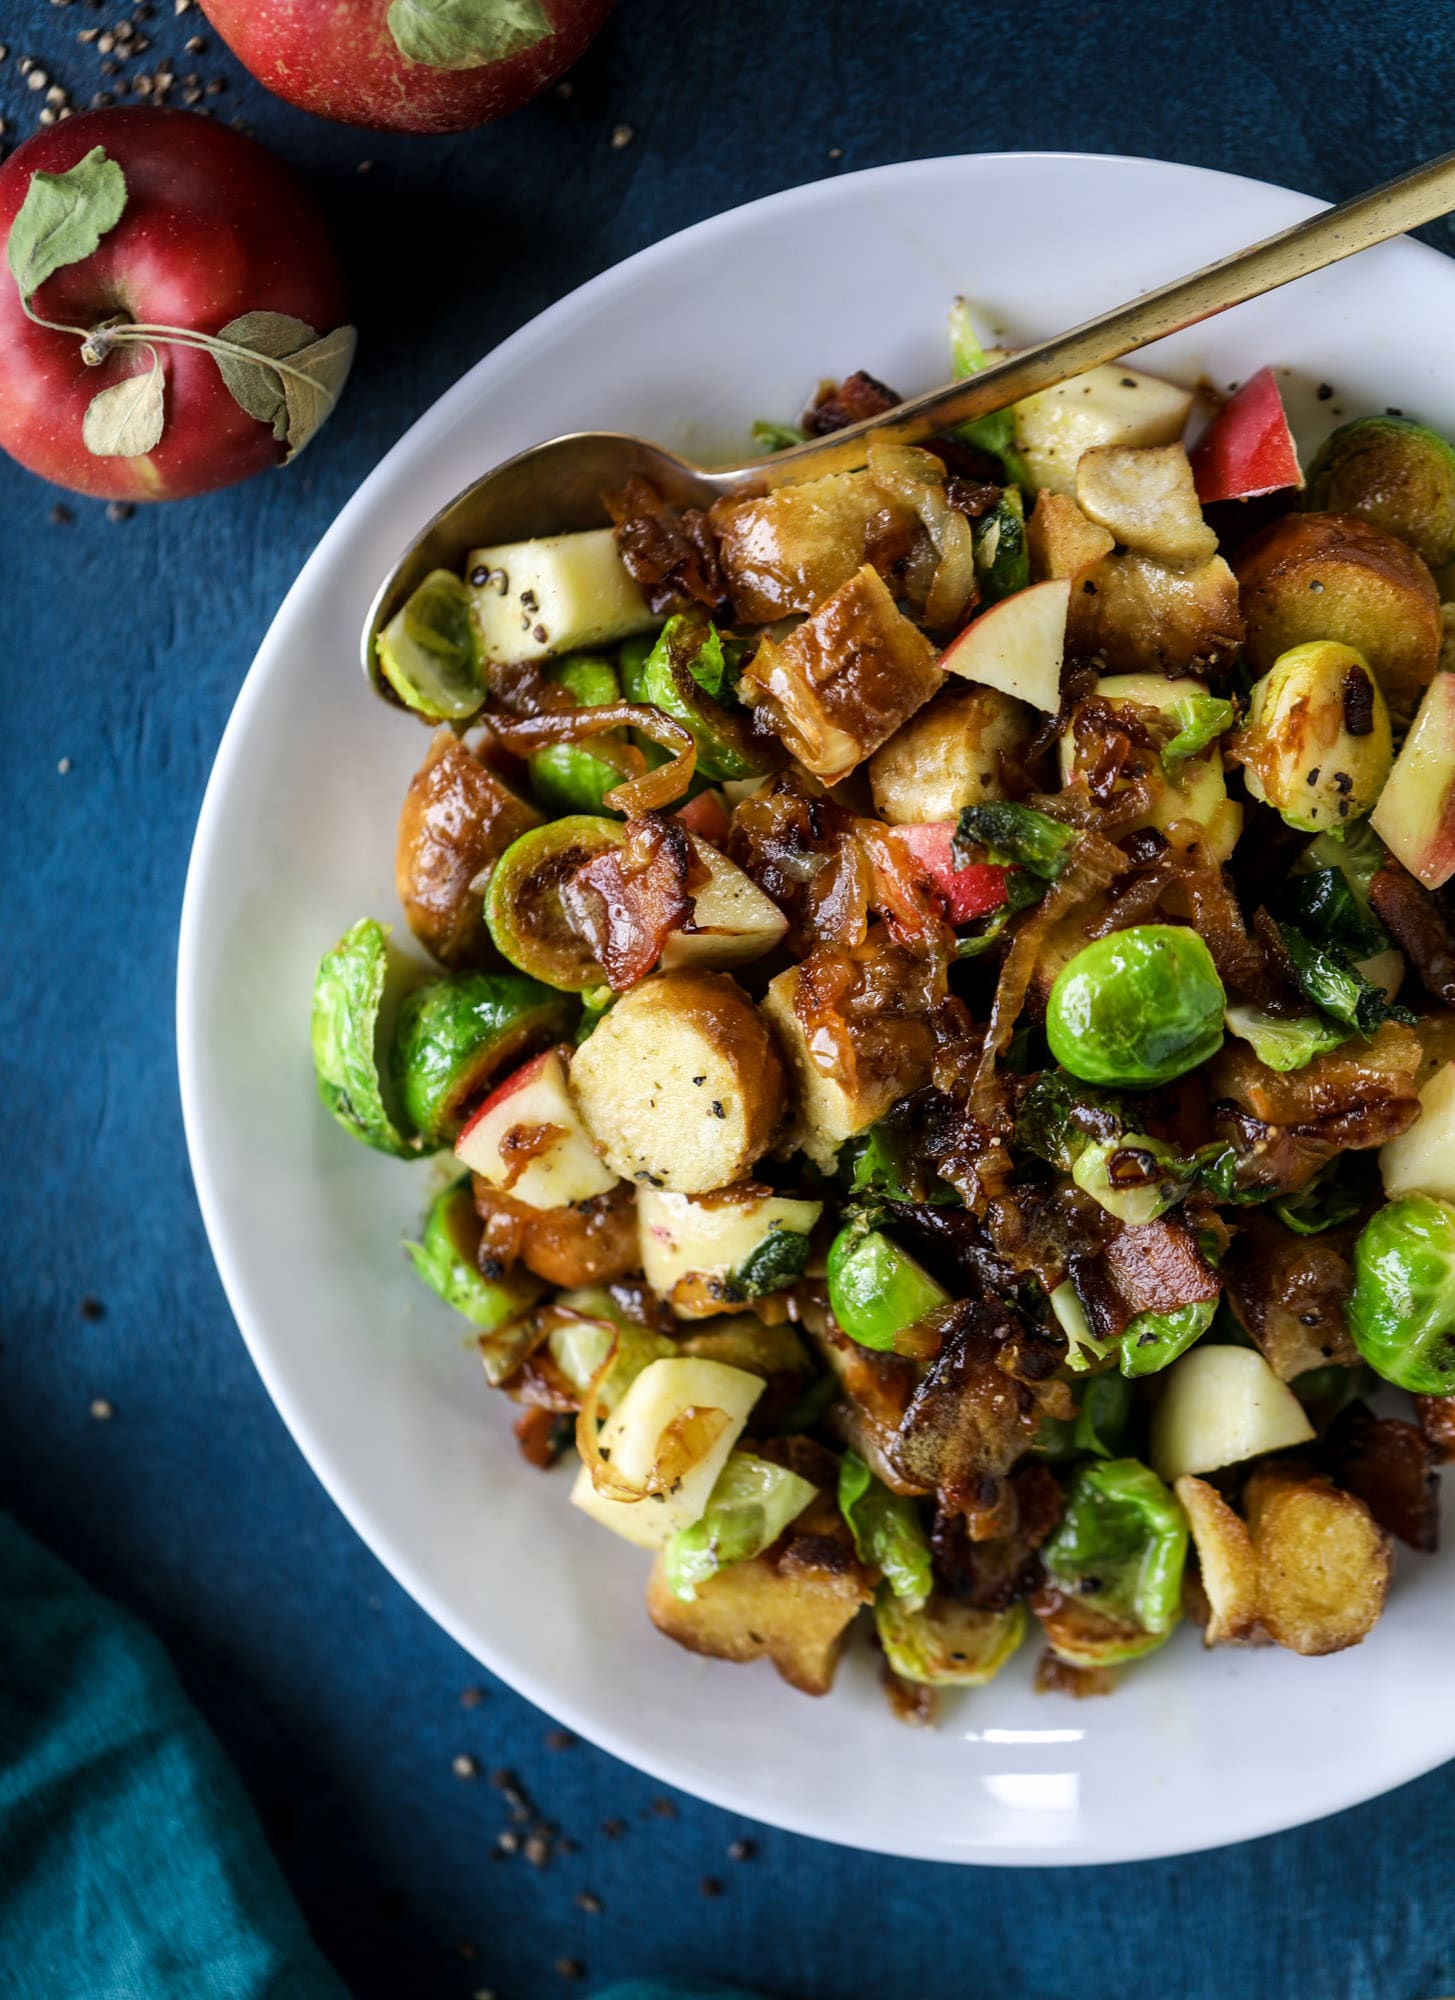 This soft pretzel panzanella with mustard vinaigrette is the best flavor combination for a fall salad there is! Crispy bacon, brussels sprouts, caramelized onion and chopped apple comes together to make for a satisfying delicious autumn salad. I howsweeteats.com #soft #pretzel #panzanella #mustard #apple #brusselssprouts